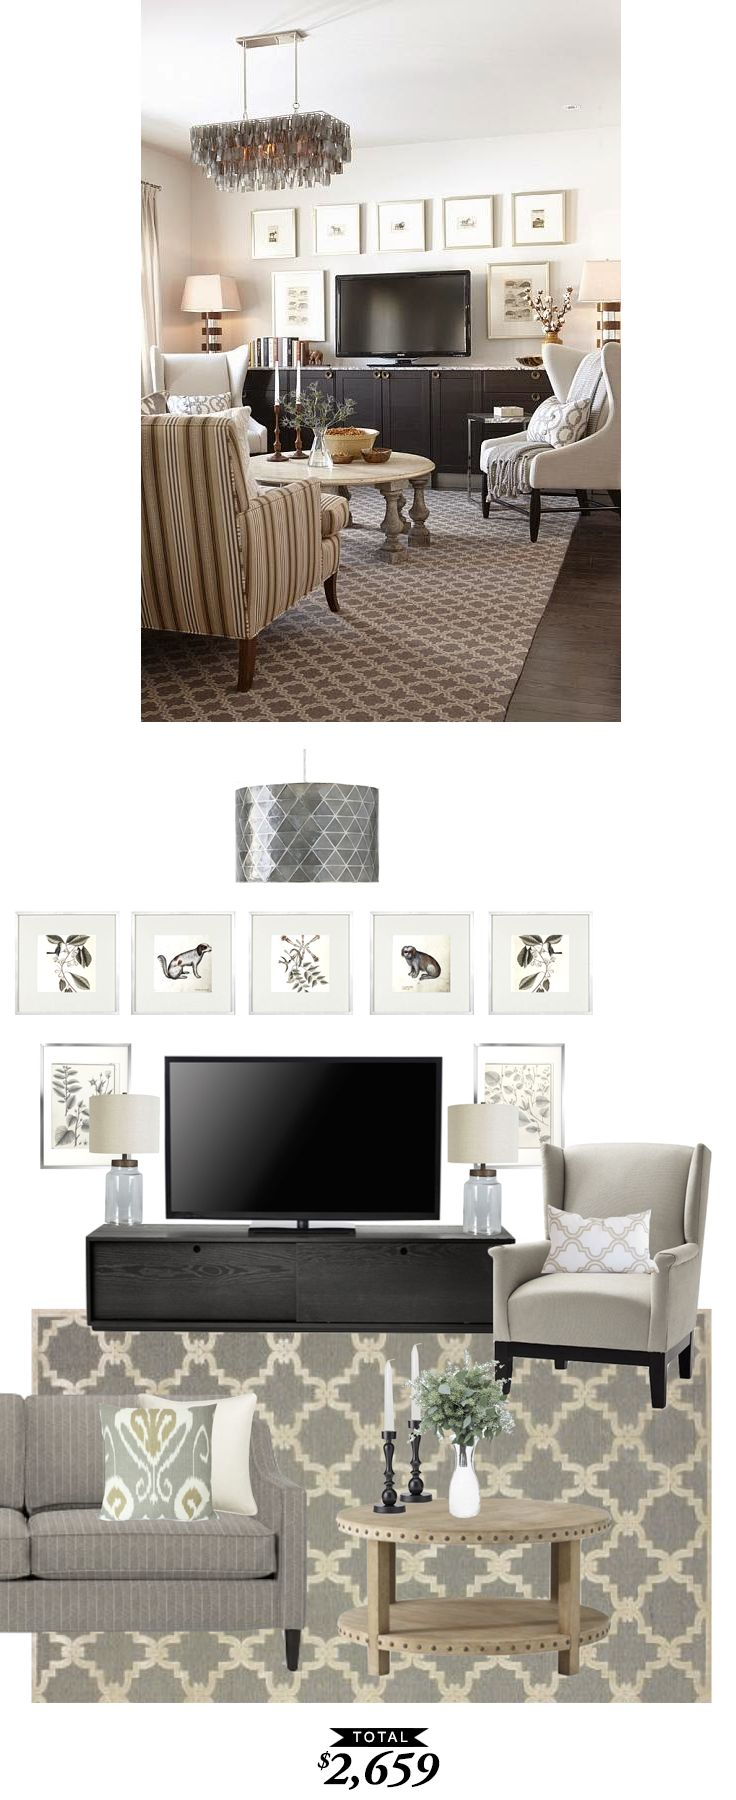 Cozy comfortable and aesthetic family room chairs fitting room app - A Cozy Family Room In Tones Of Gray And Taupe Designed By Sarahrdesign And Recreated